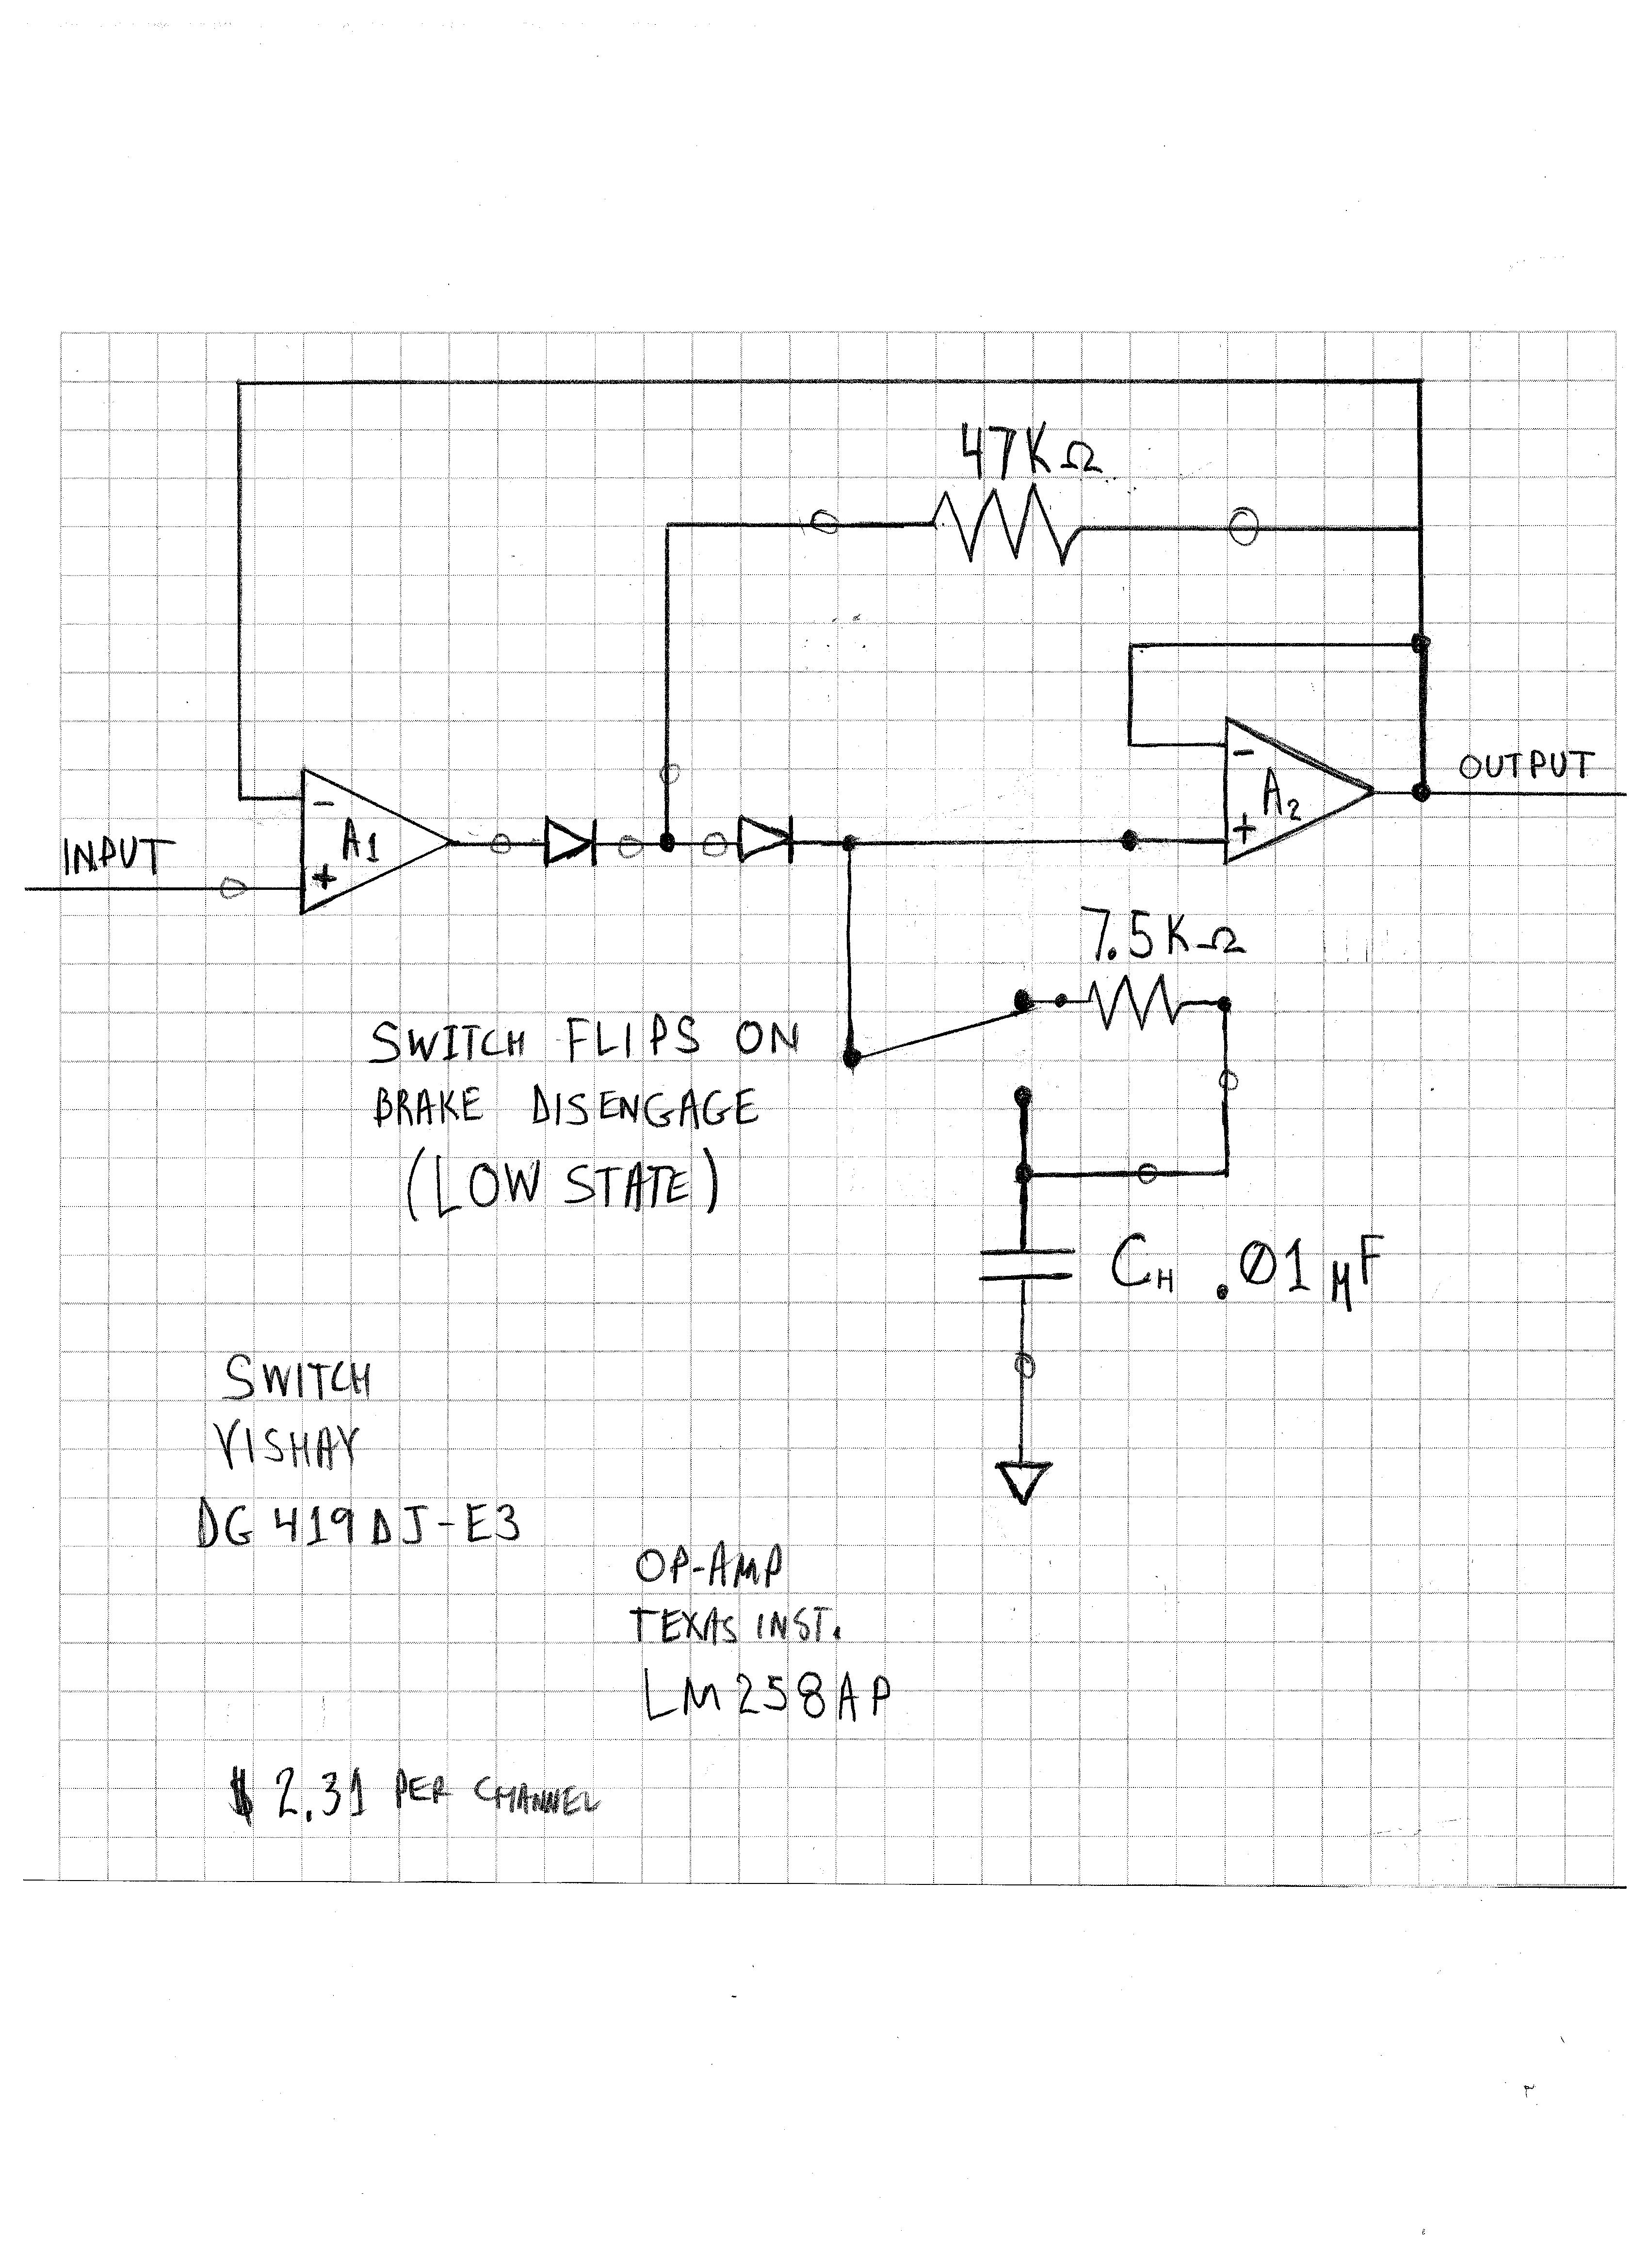 Lf198h Sample And Hold Circuit Amplifiers Forum Ti Lm339 This Is A Basic Two Contact Touch Switch Sensor Not In Peak Collect Mode I Also Wanted The Capacitor Voltage Relatively Same Neighborhood When Acquisition Window